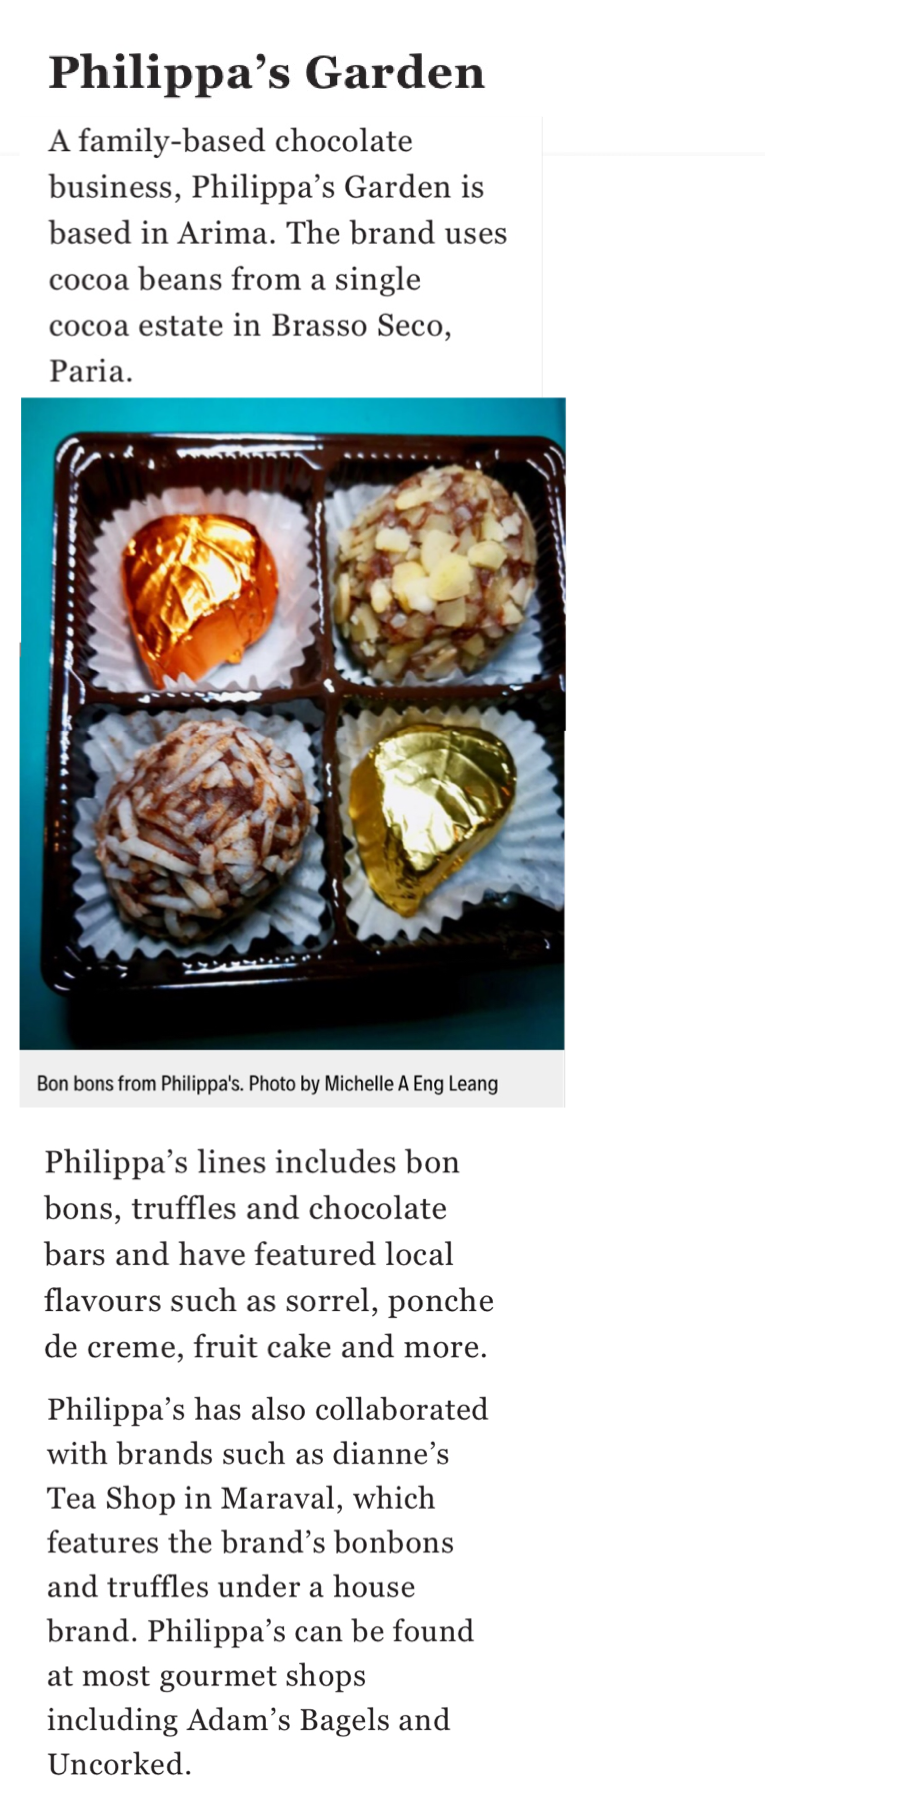 Raising the bar Local chocolatiers on the rise - Check out the full (June 26th 2019) Newsday Newspaper article by Michelle A. Eng Leang here.